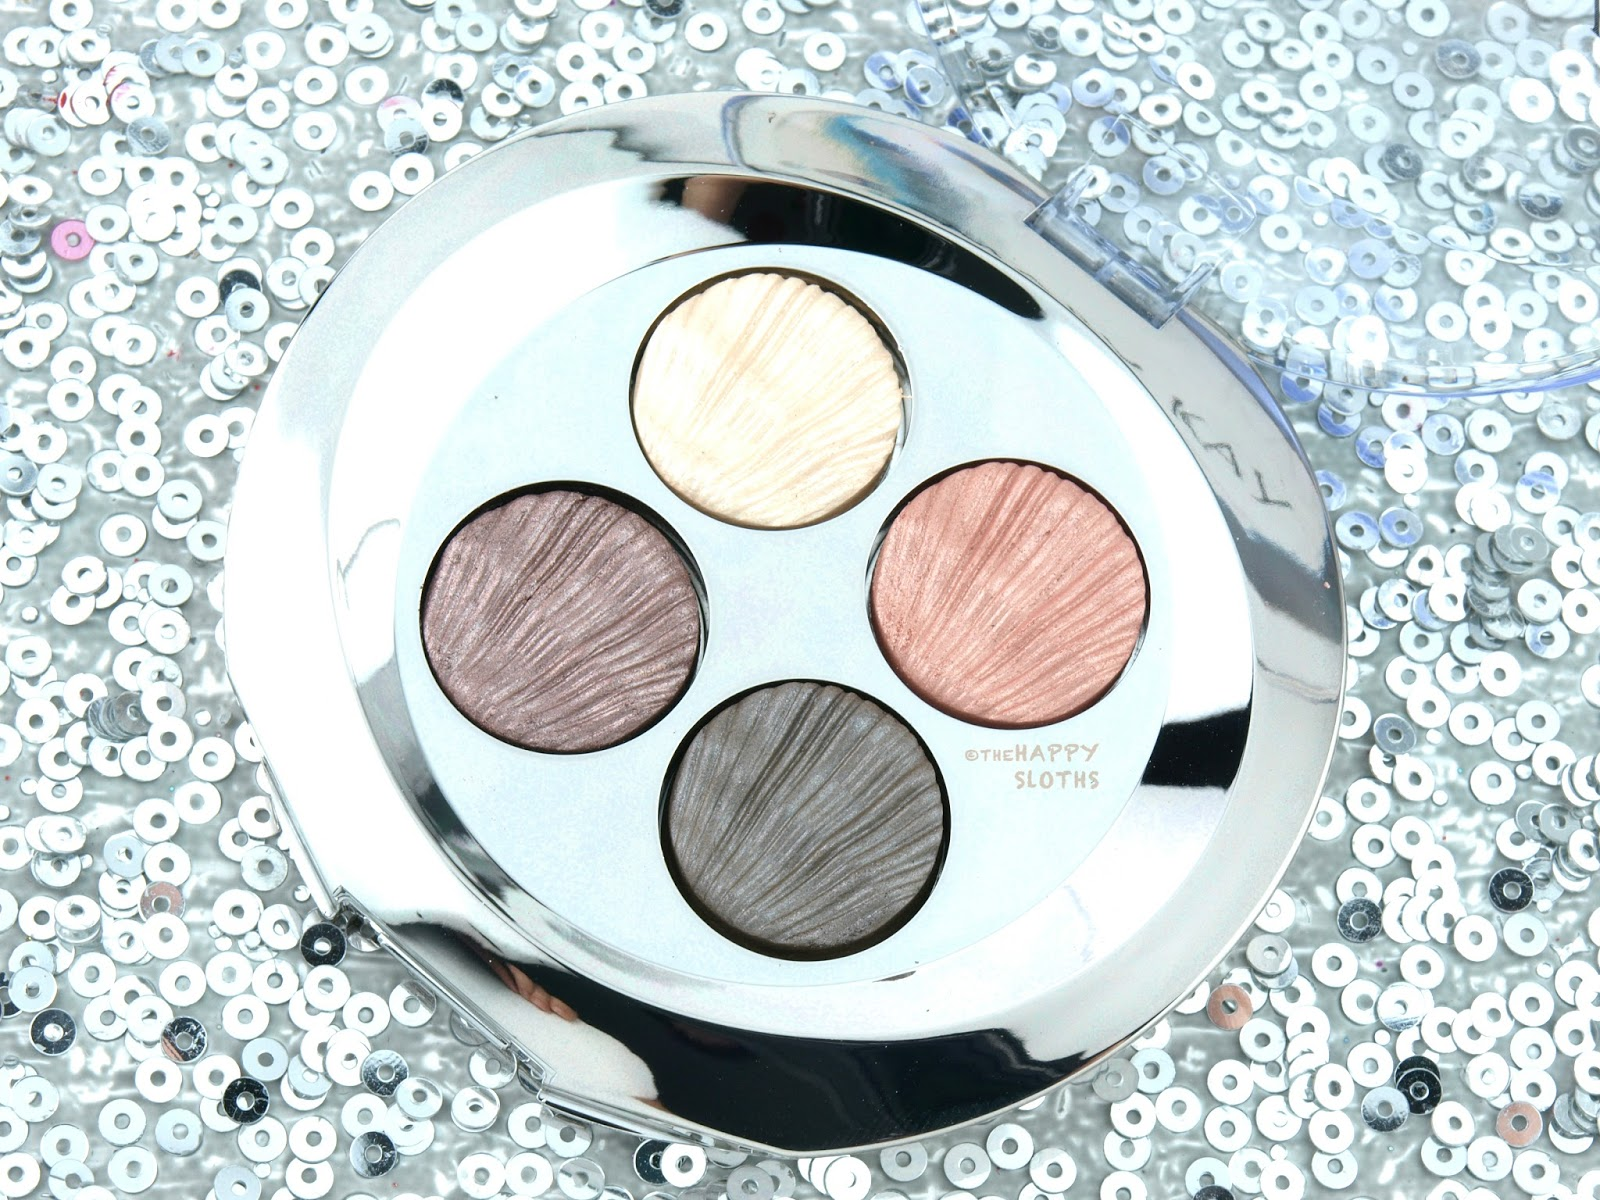 Mary Kay Holiday 2016 Pure Dimensions Eye Palette: Review and Swatches